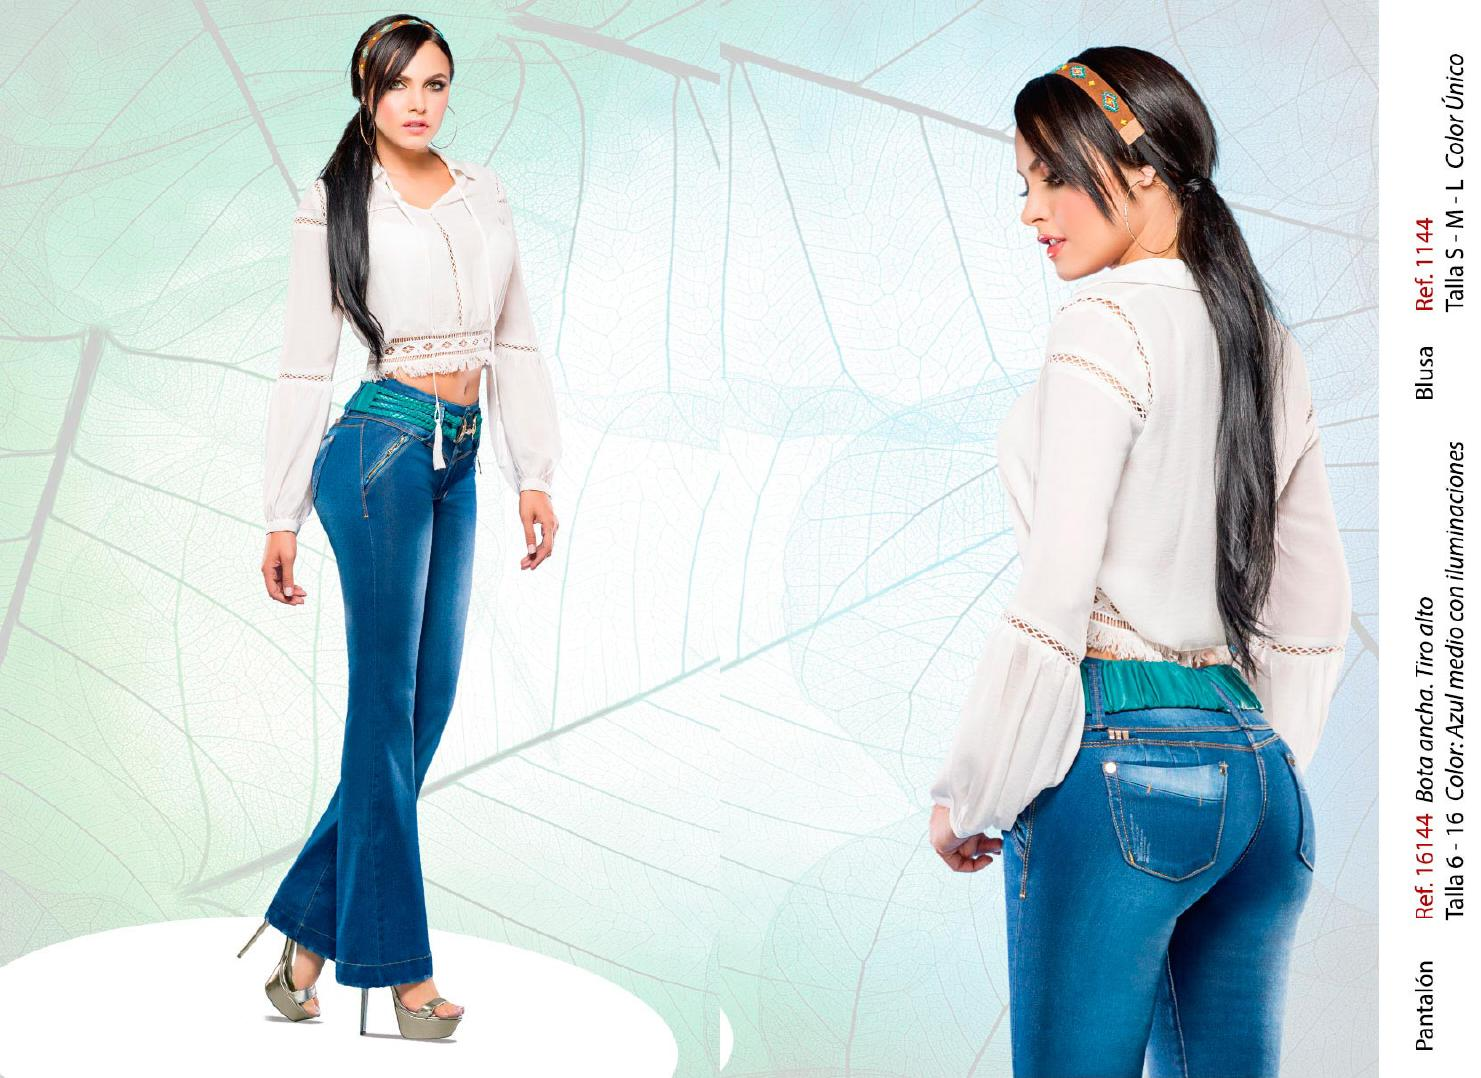 DIV Catálogo Jeans Levantacola by newkjeans - Issuu